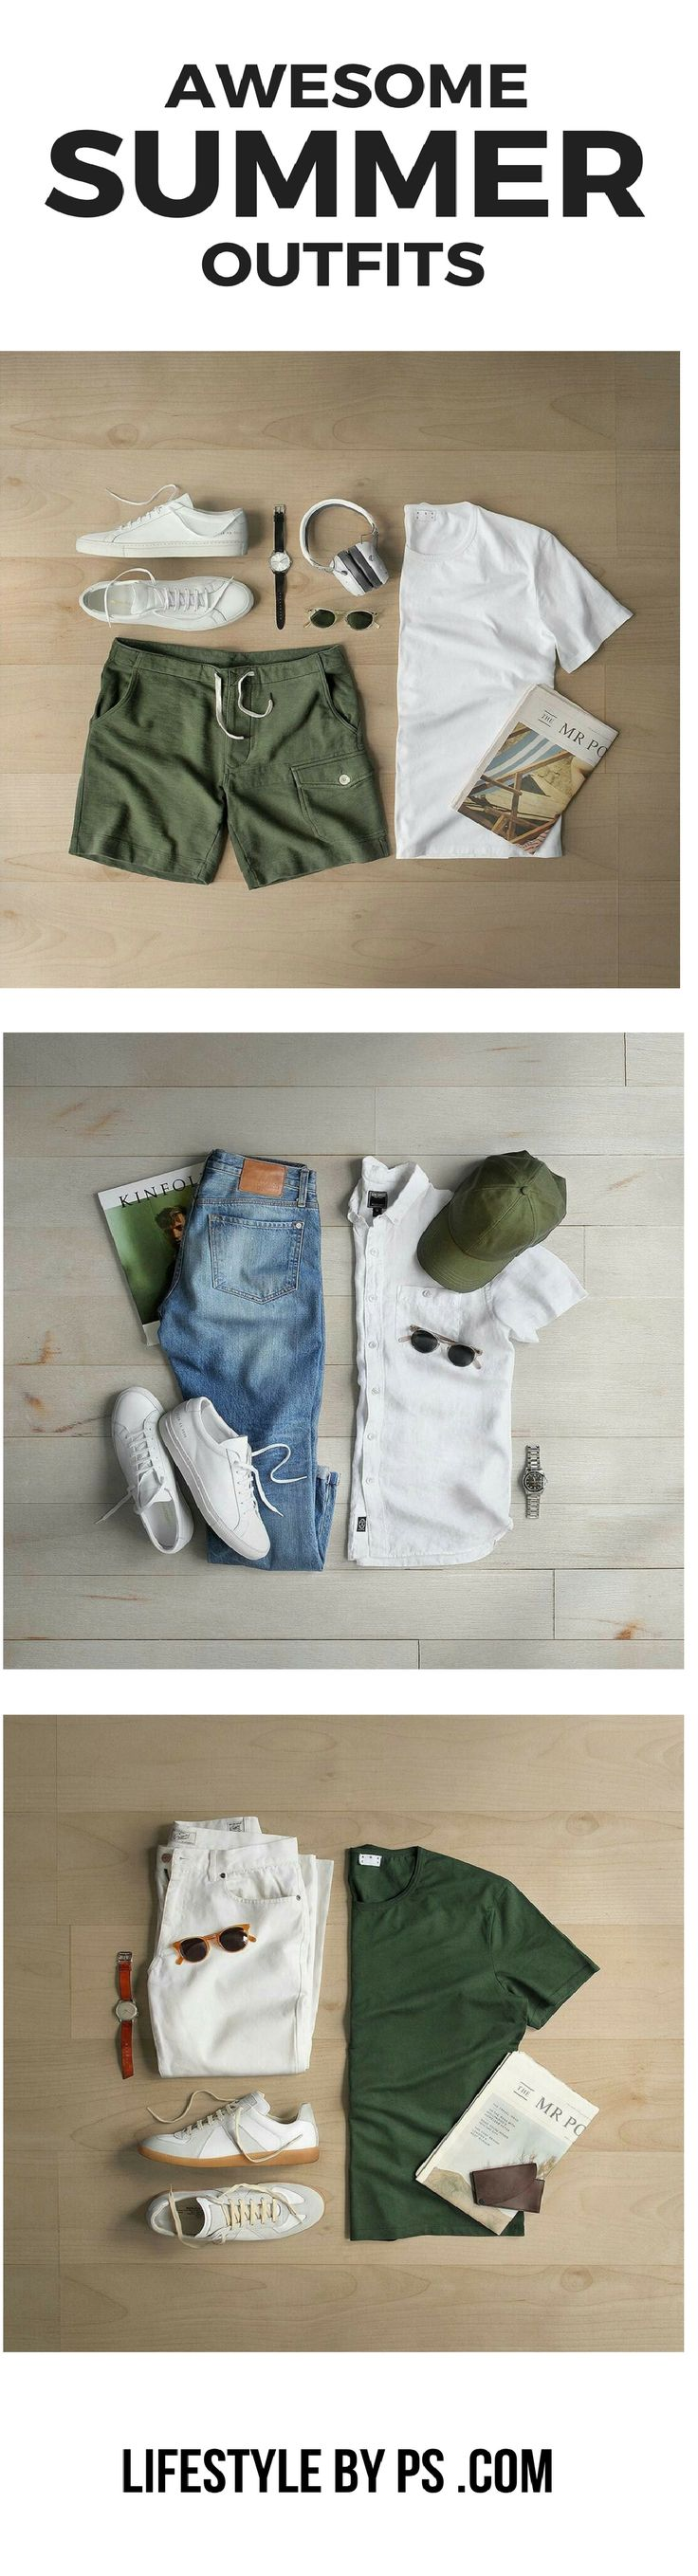 Awesome Summer Outfits for guys.